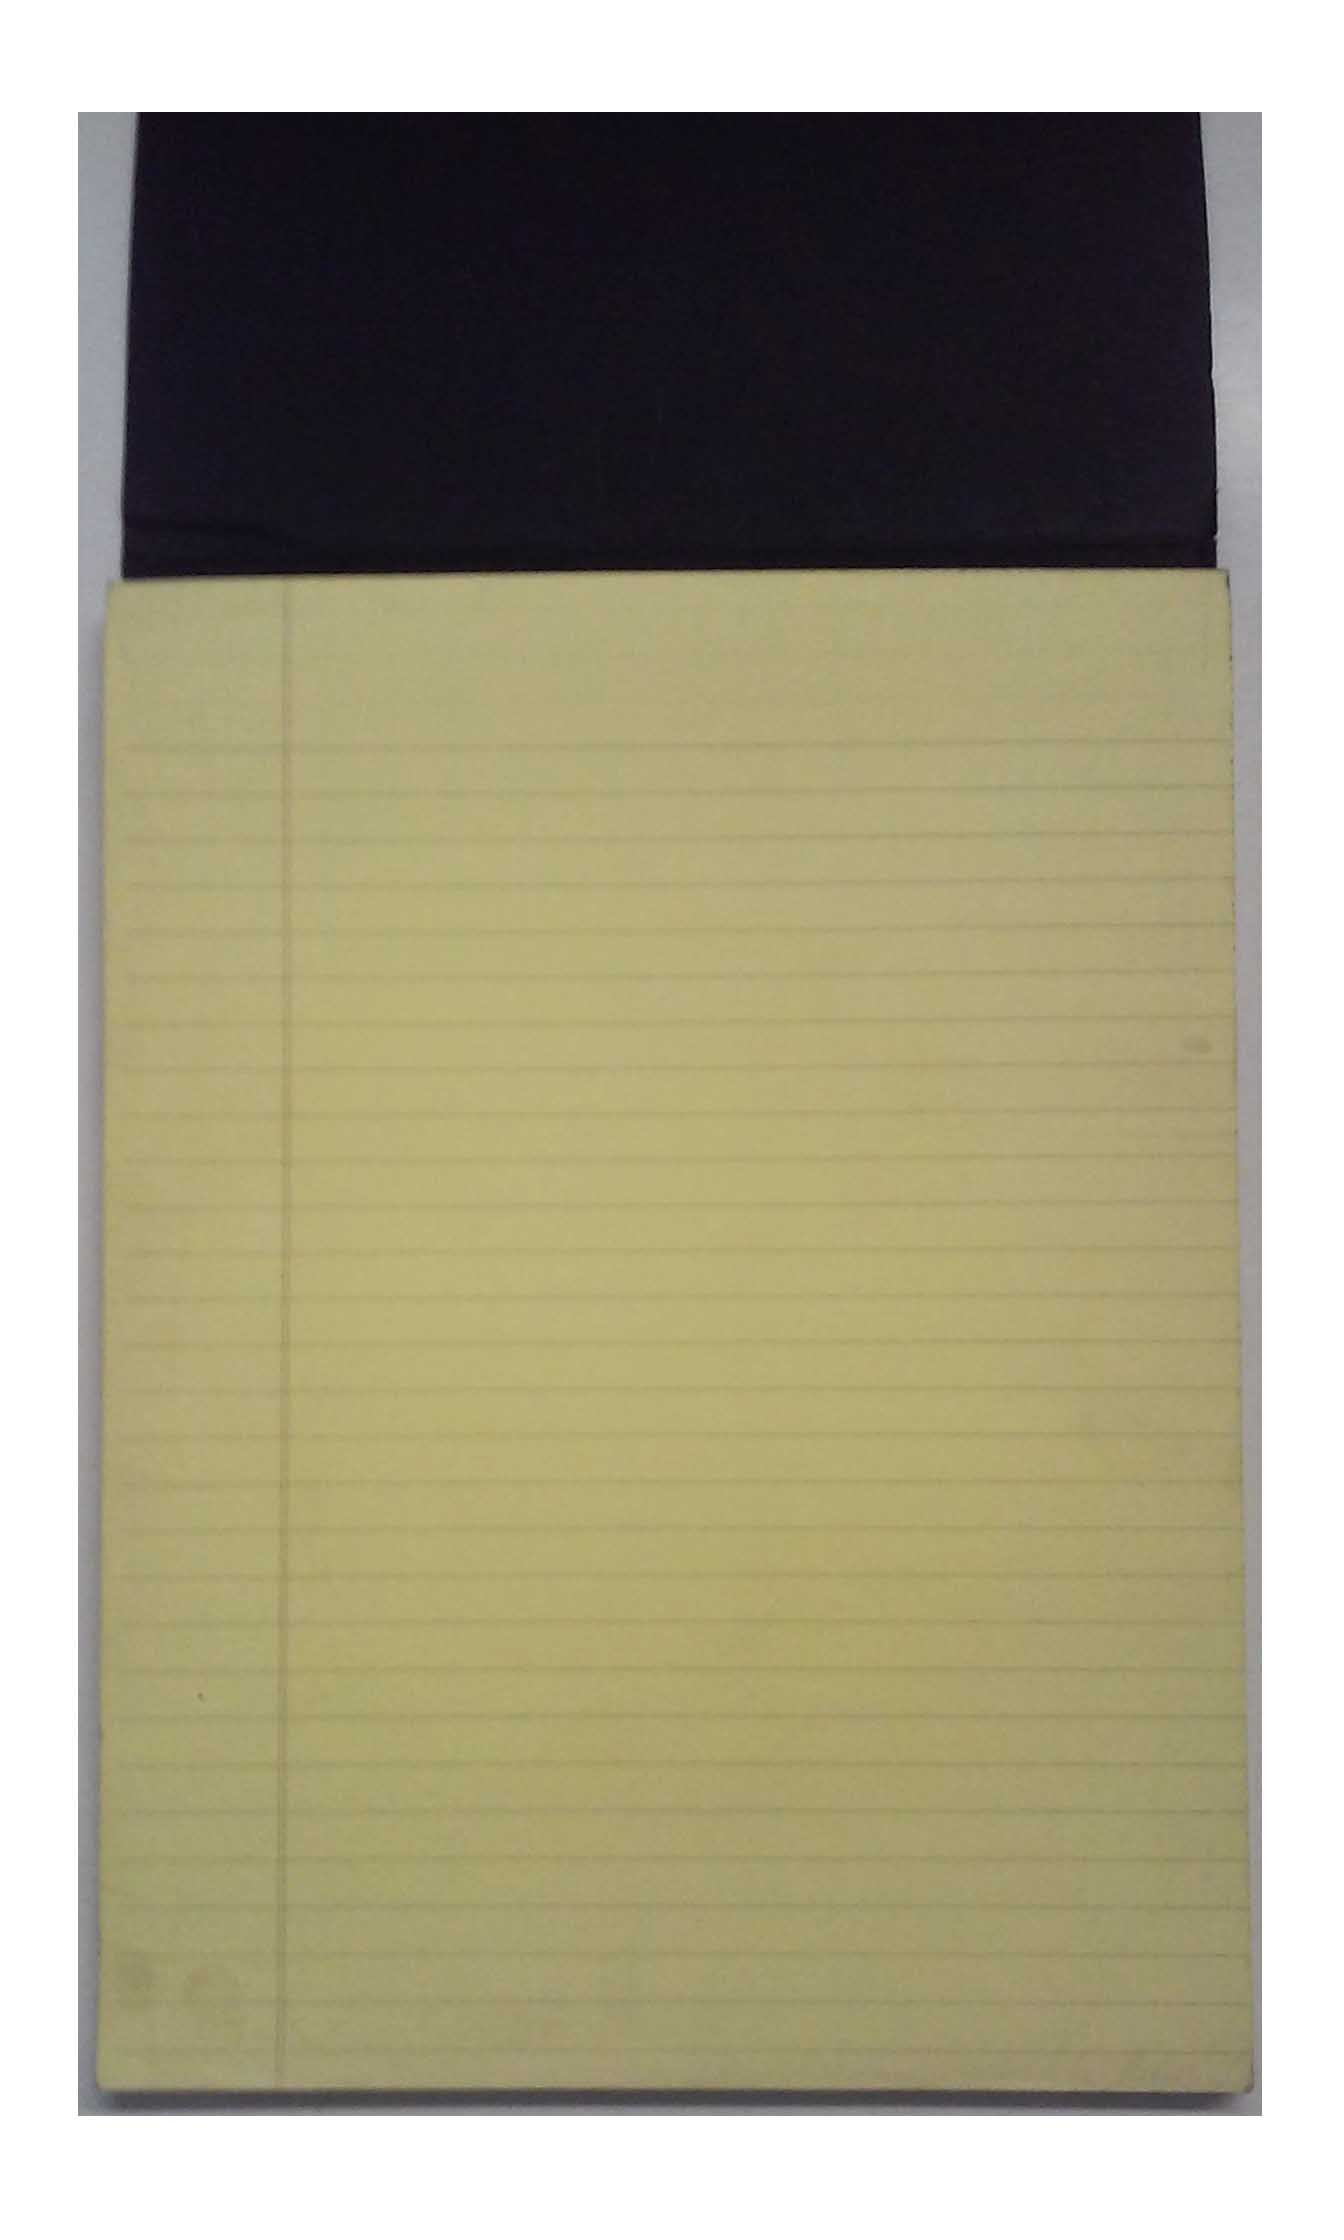 Exacompta Black Book 5701 Yellow Ruled Pad 70 Sheets 9'' x 11''